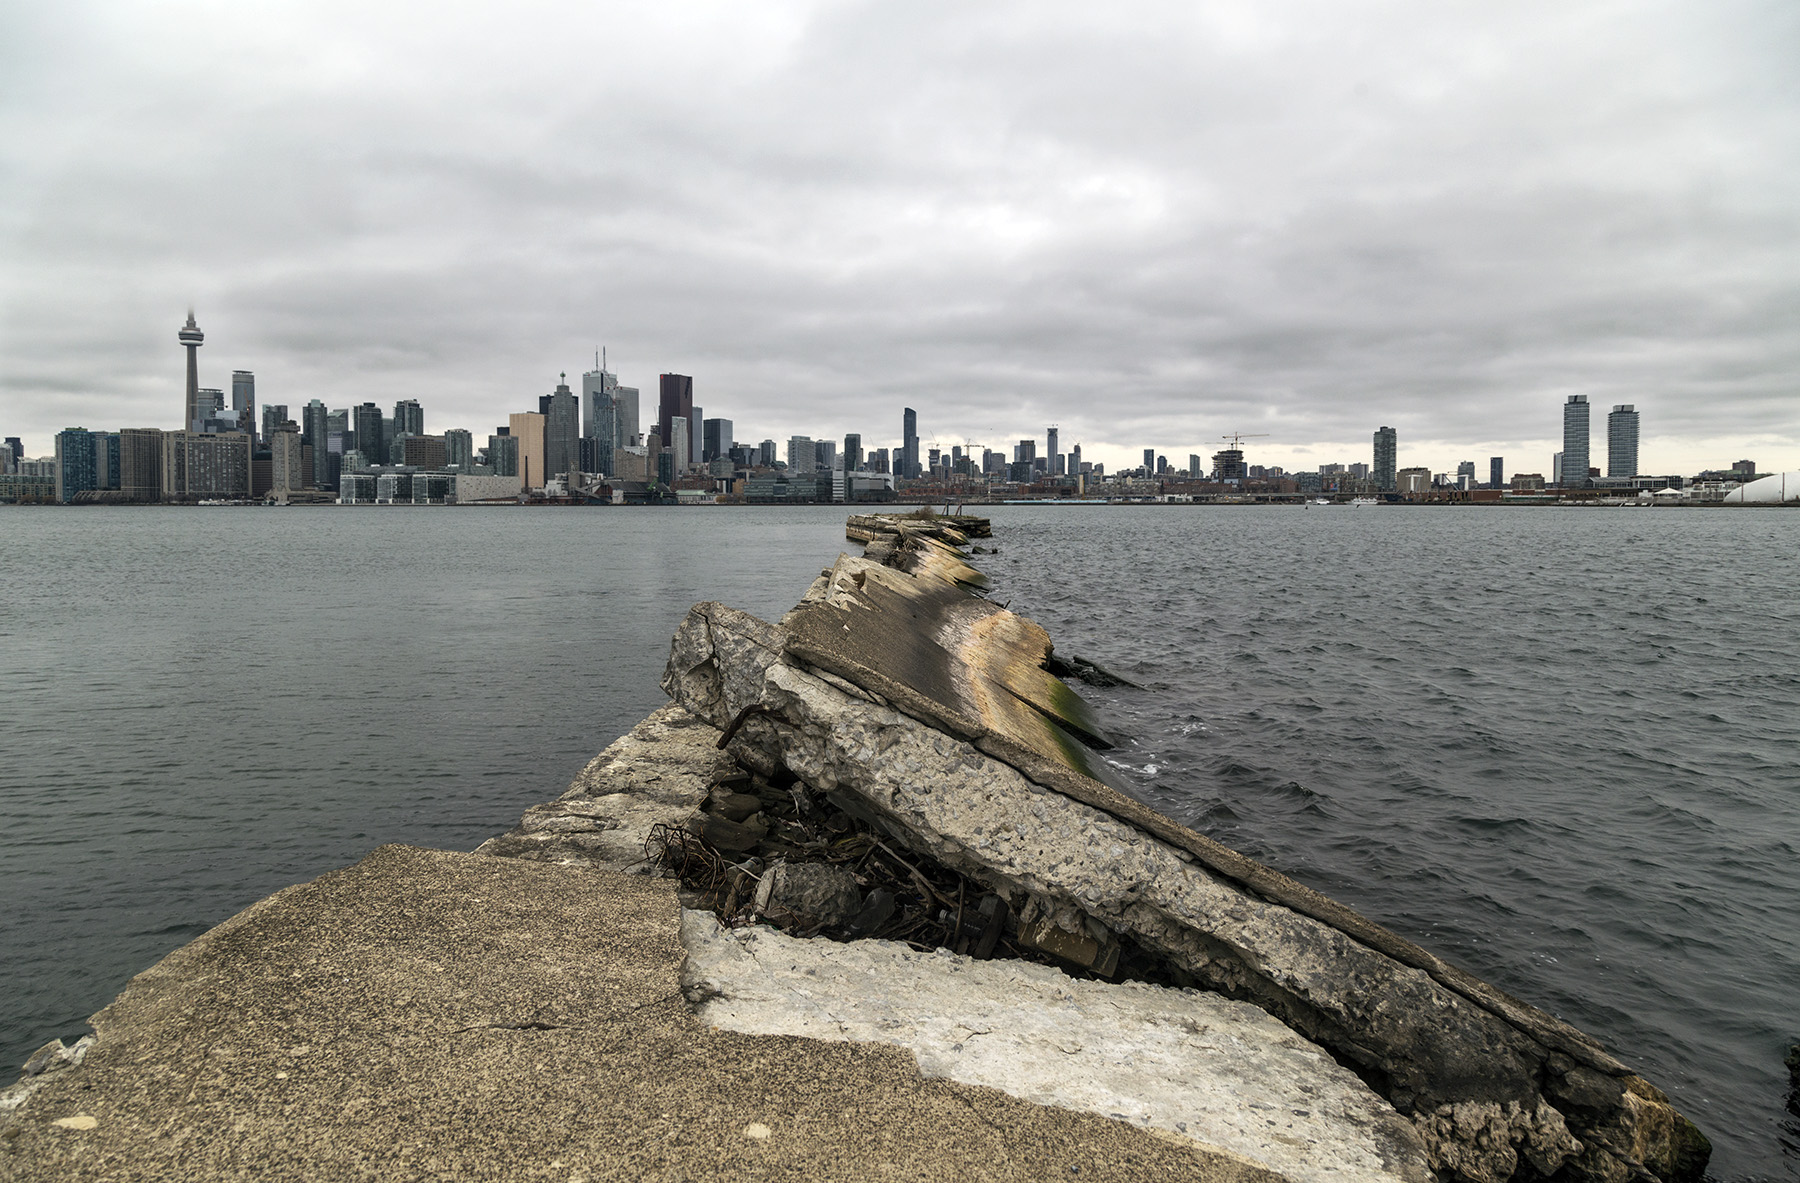 20151228. Derelict concrete pier points to Toronto's skyline.